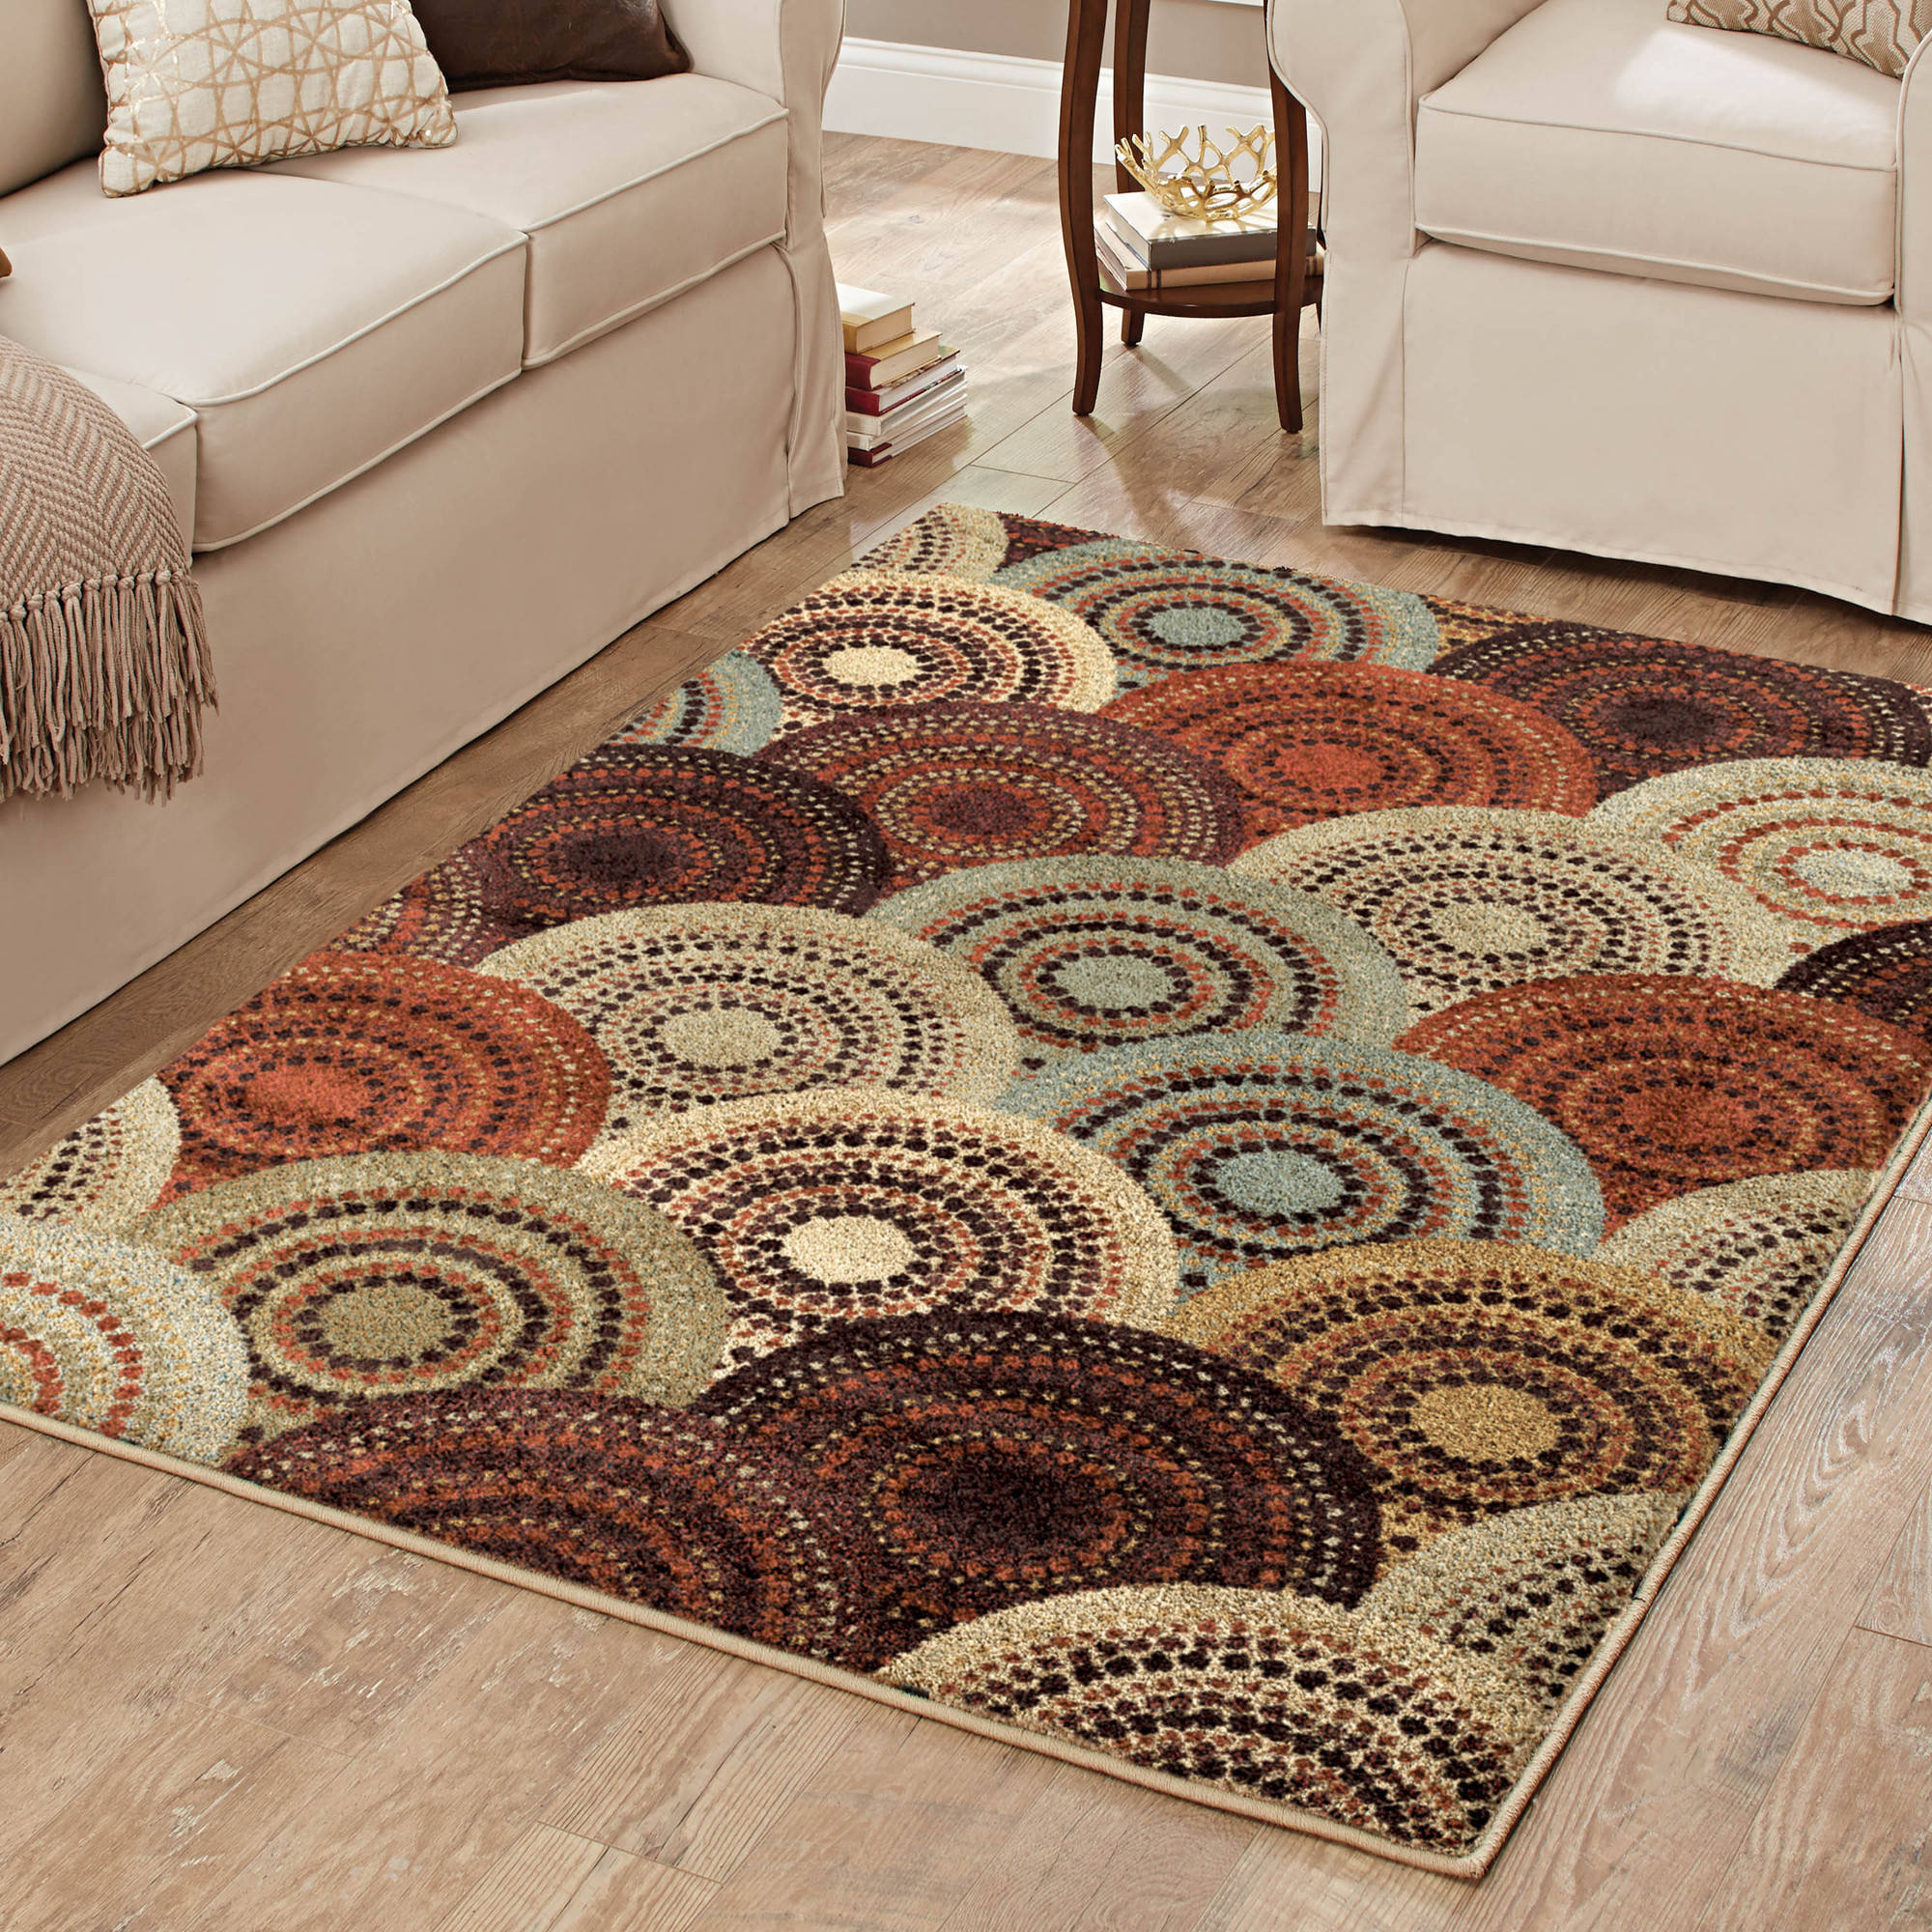 Better Homes and Gardens Spice Dotted Circles Multi-Colored Area Rug